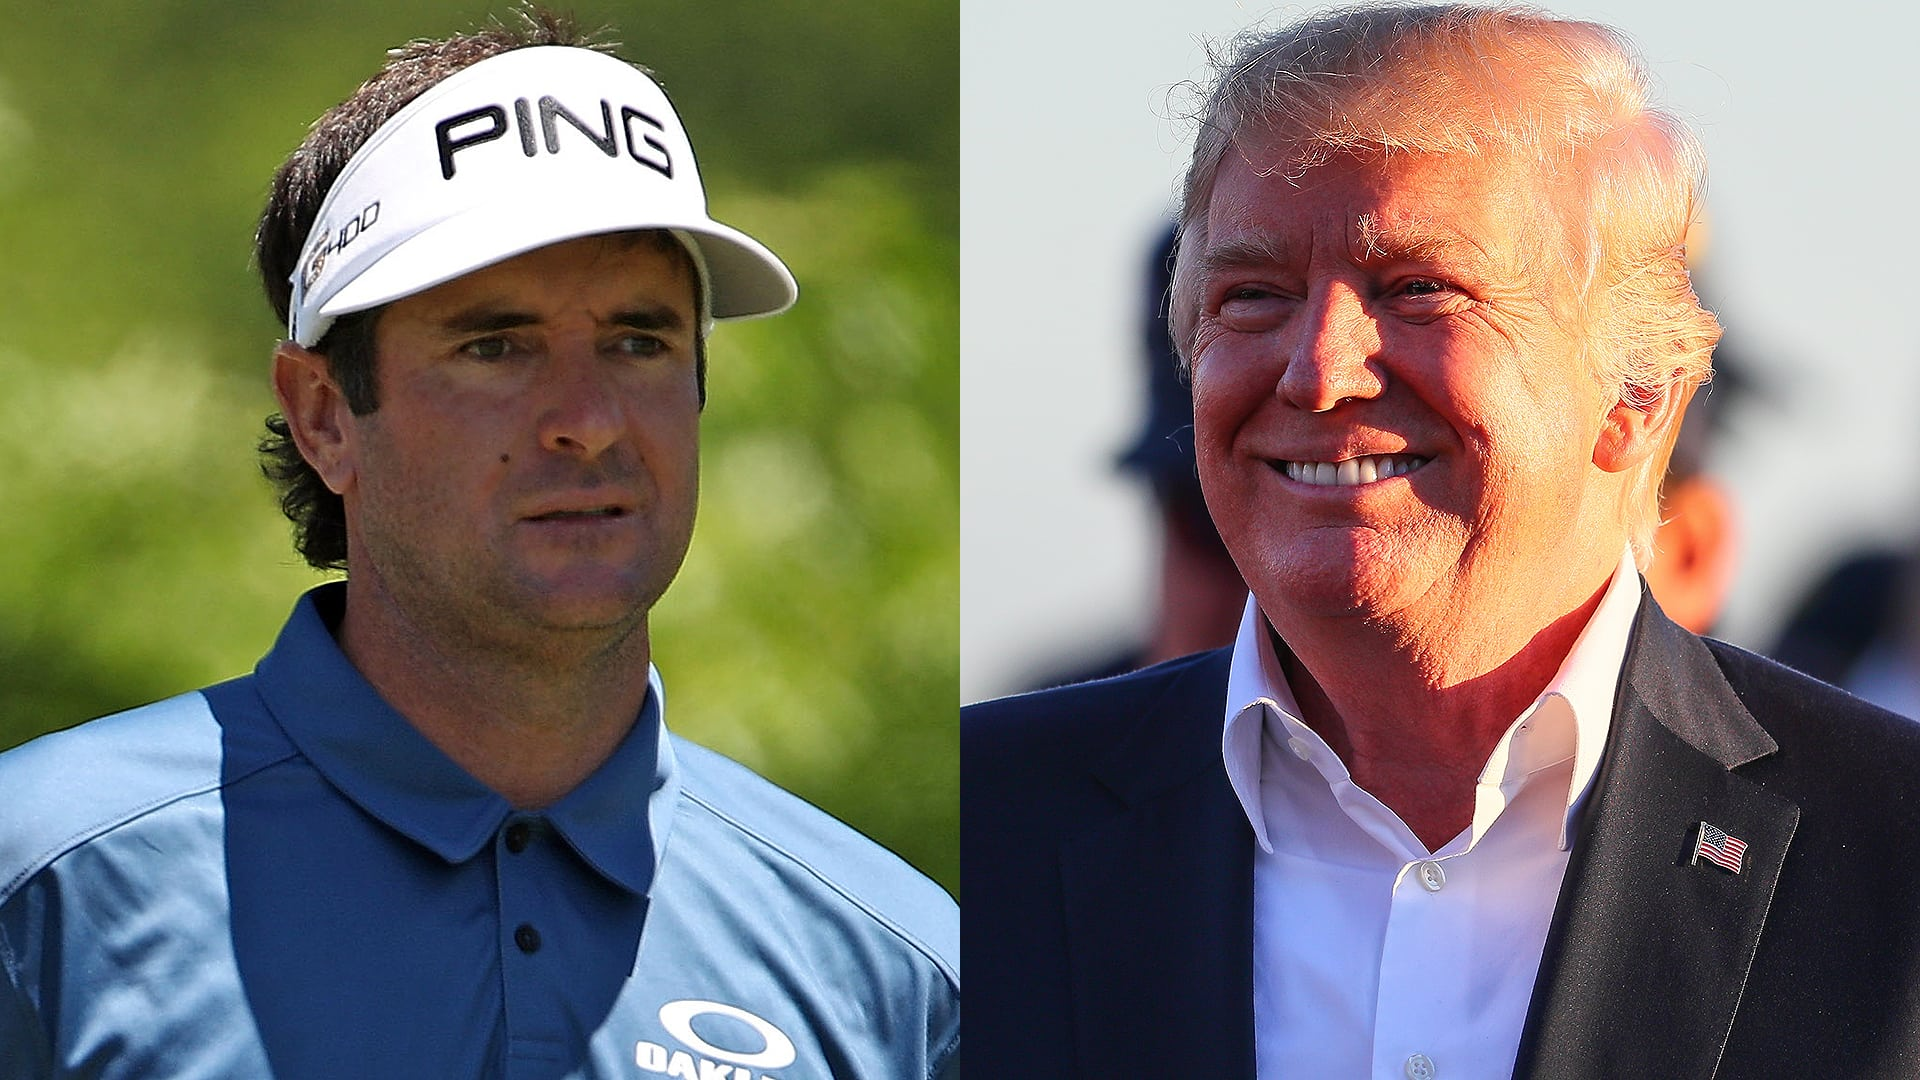 Bubba: I would never tank against Trump